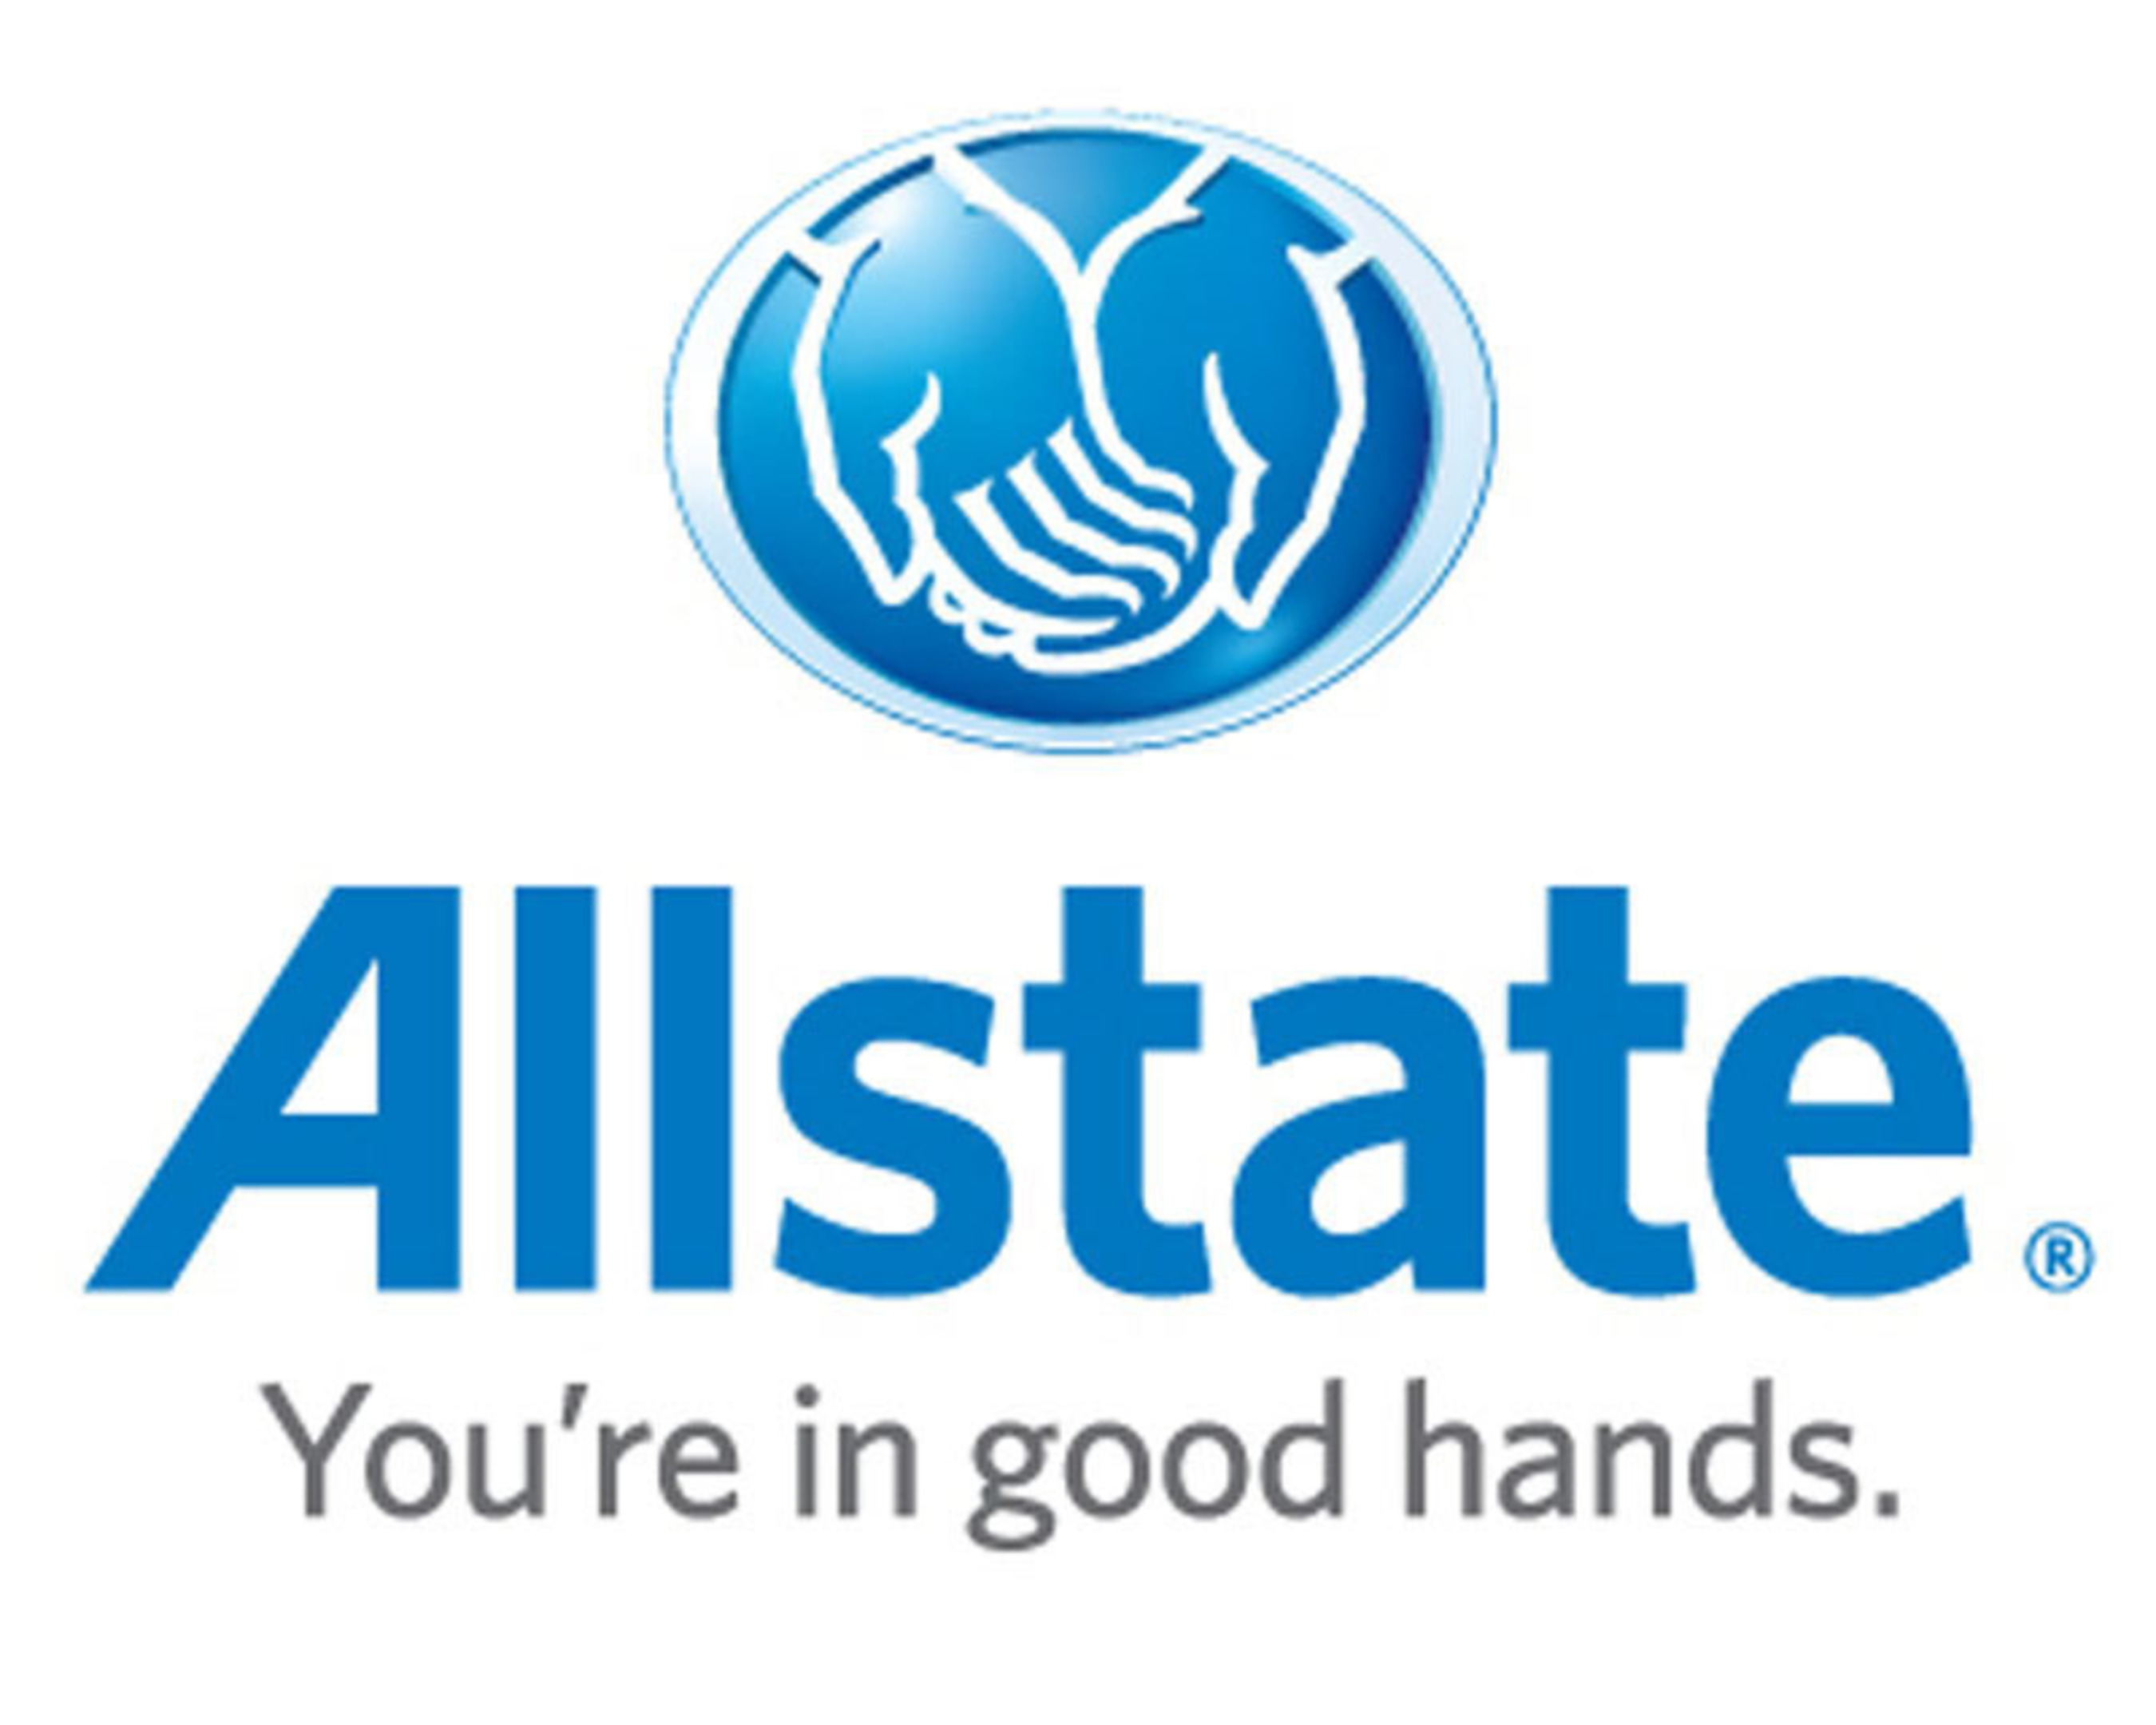 Allstate Announces New Instant Claims Payment Method